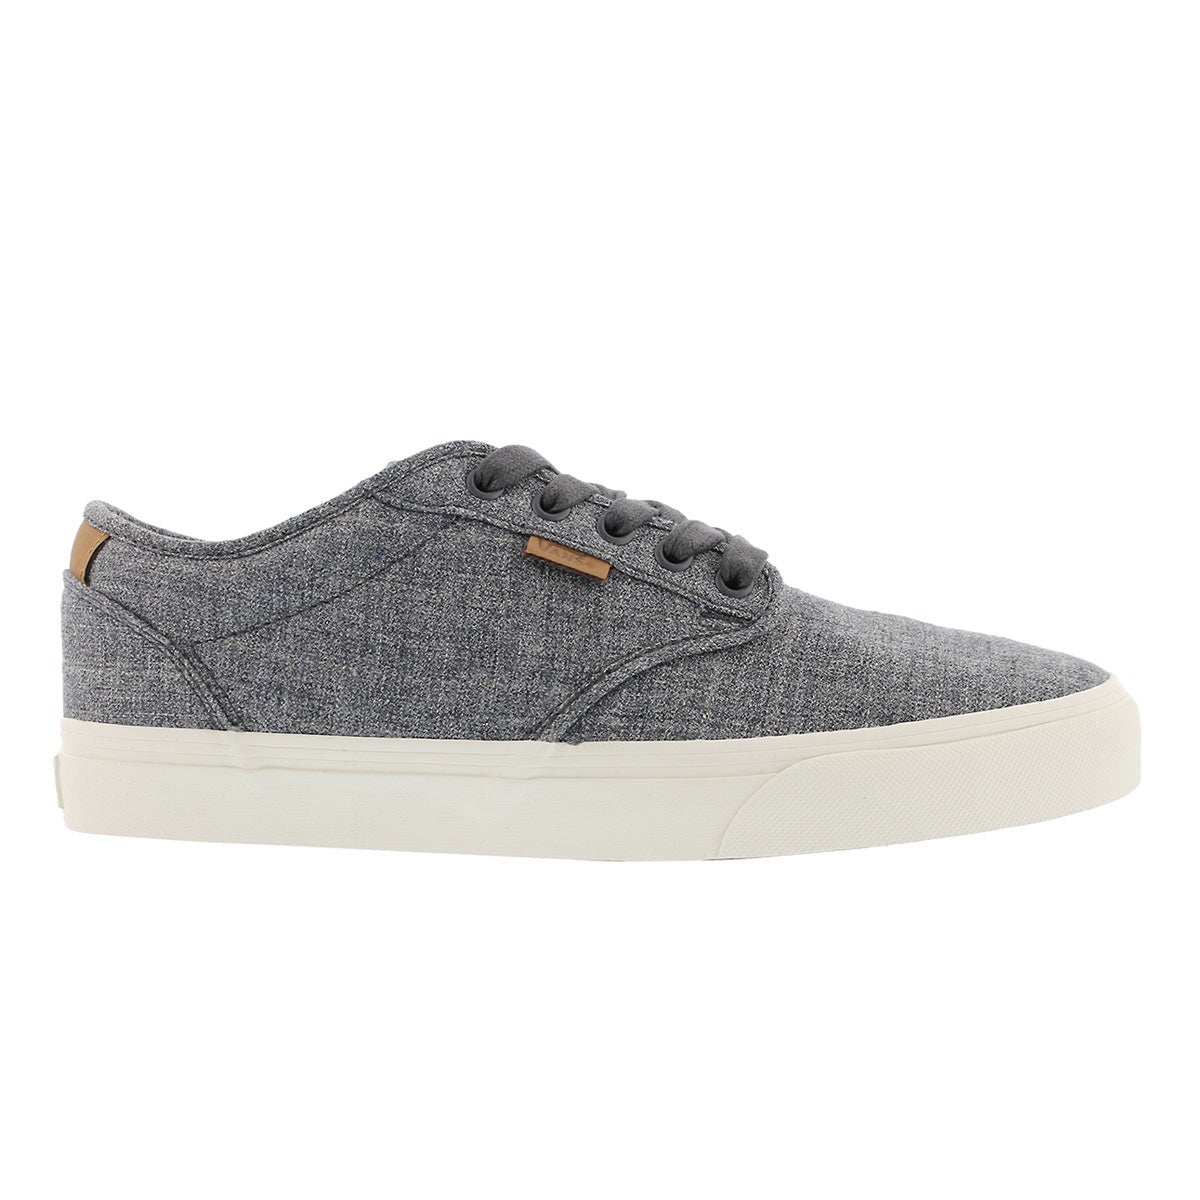 Mns Atwood Deluxe grey/marshmellow snkr